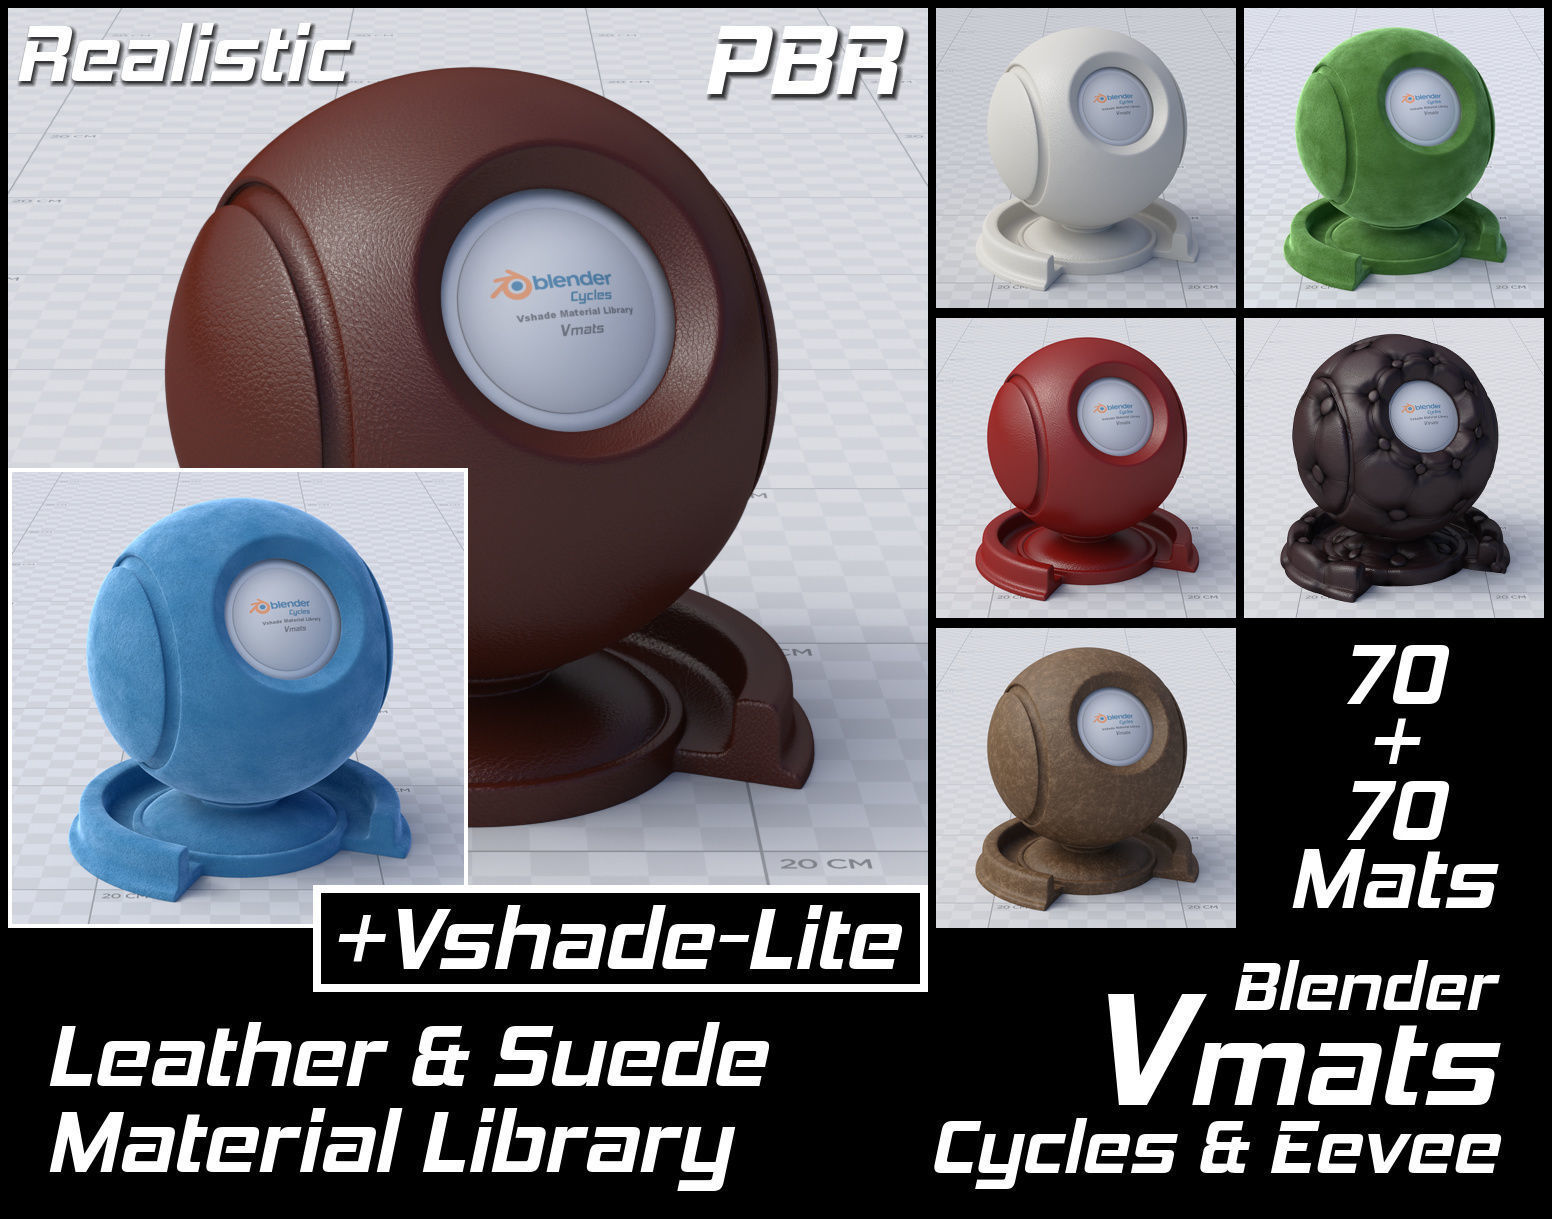 VMATS Leather and Suede Material Library for Cycles and Eevee